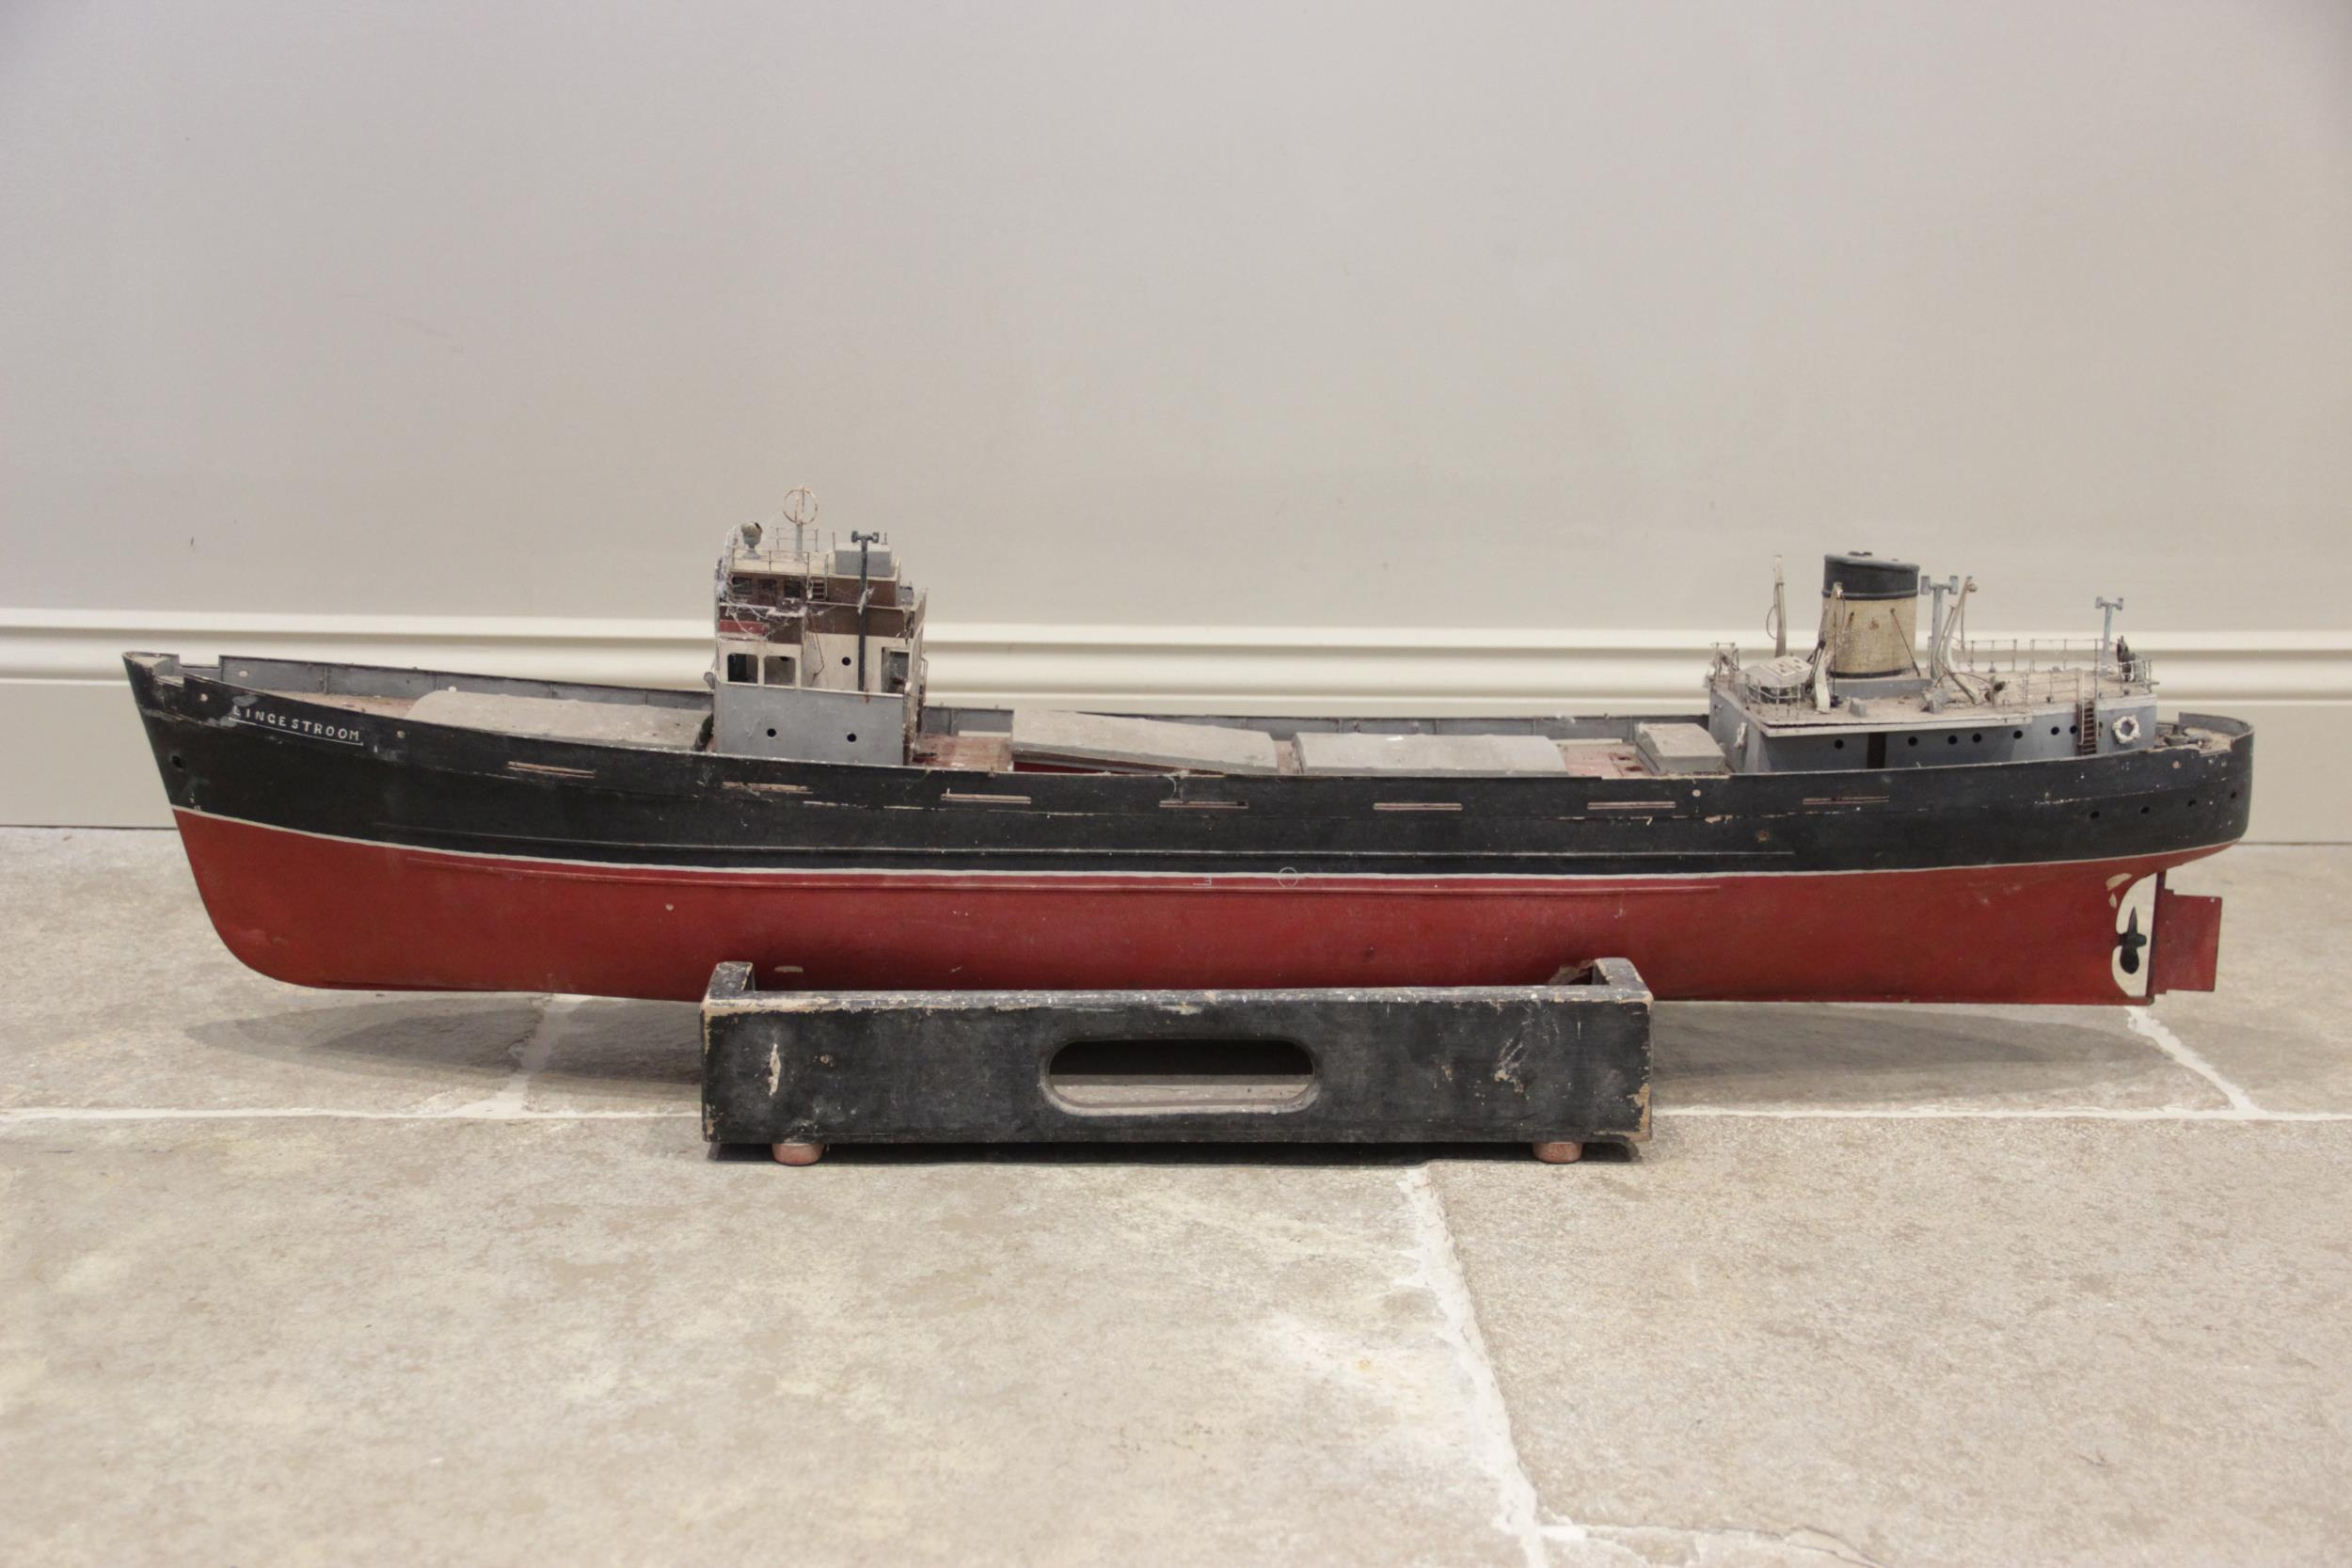 A mid 20th century scratch built model of the cargo ship 'Lingestroom', a scale recreation of an